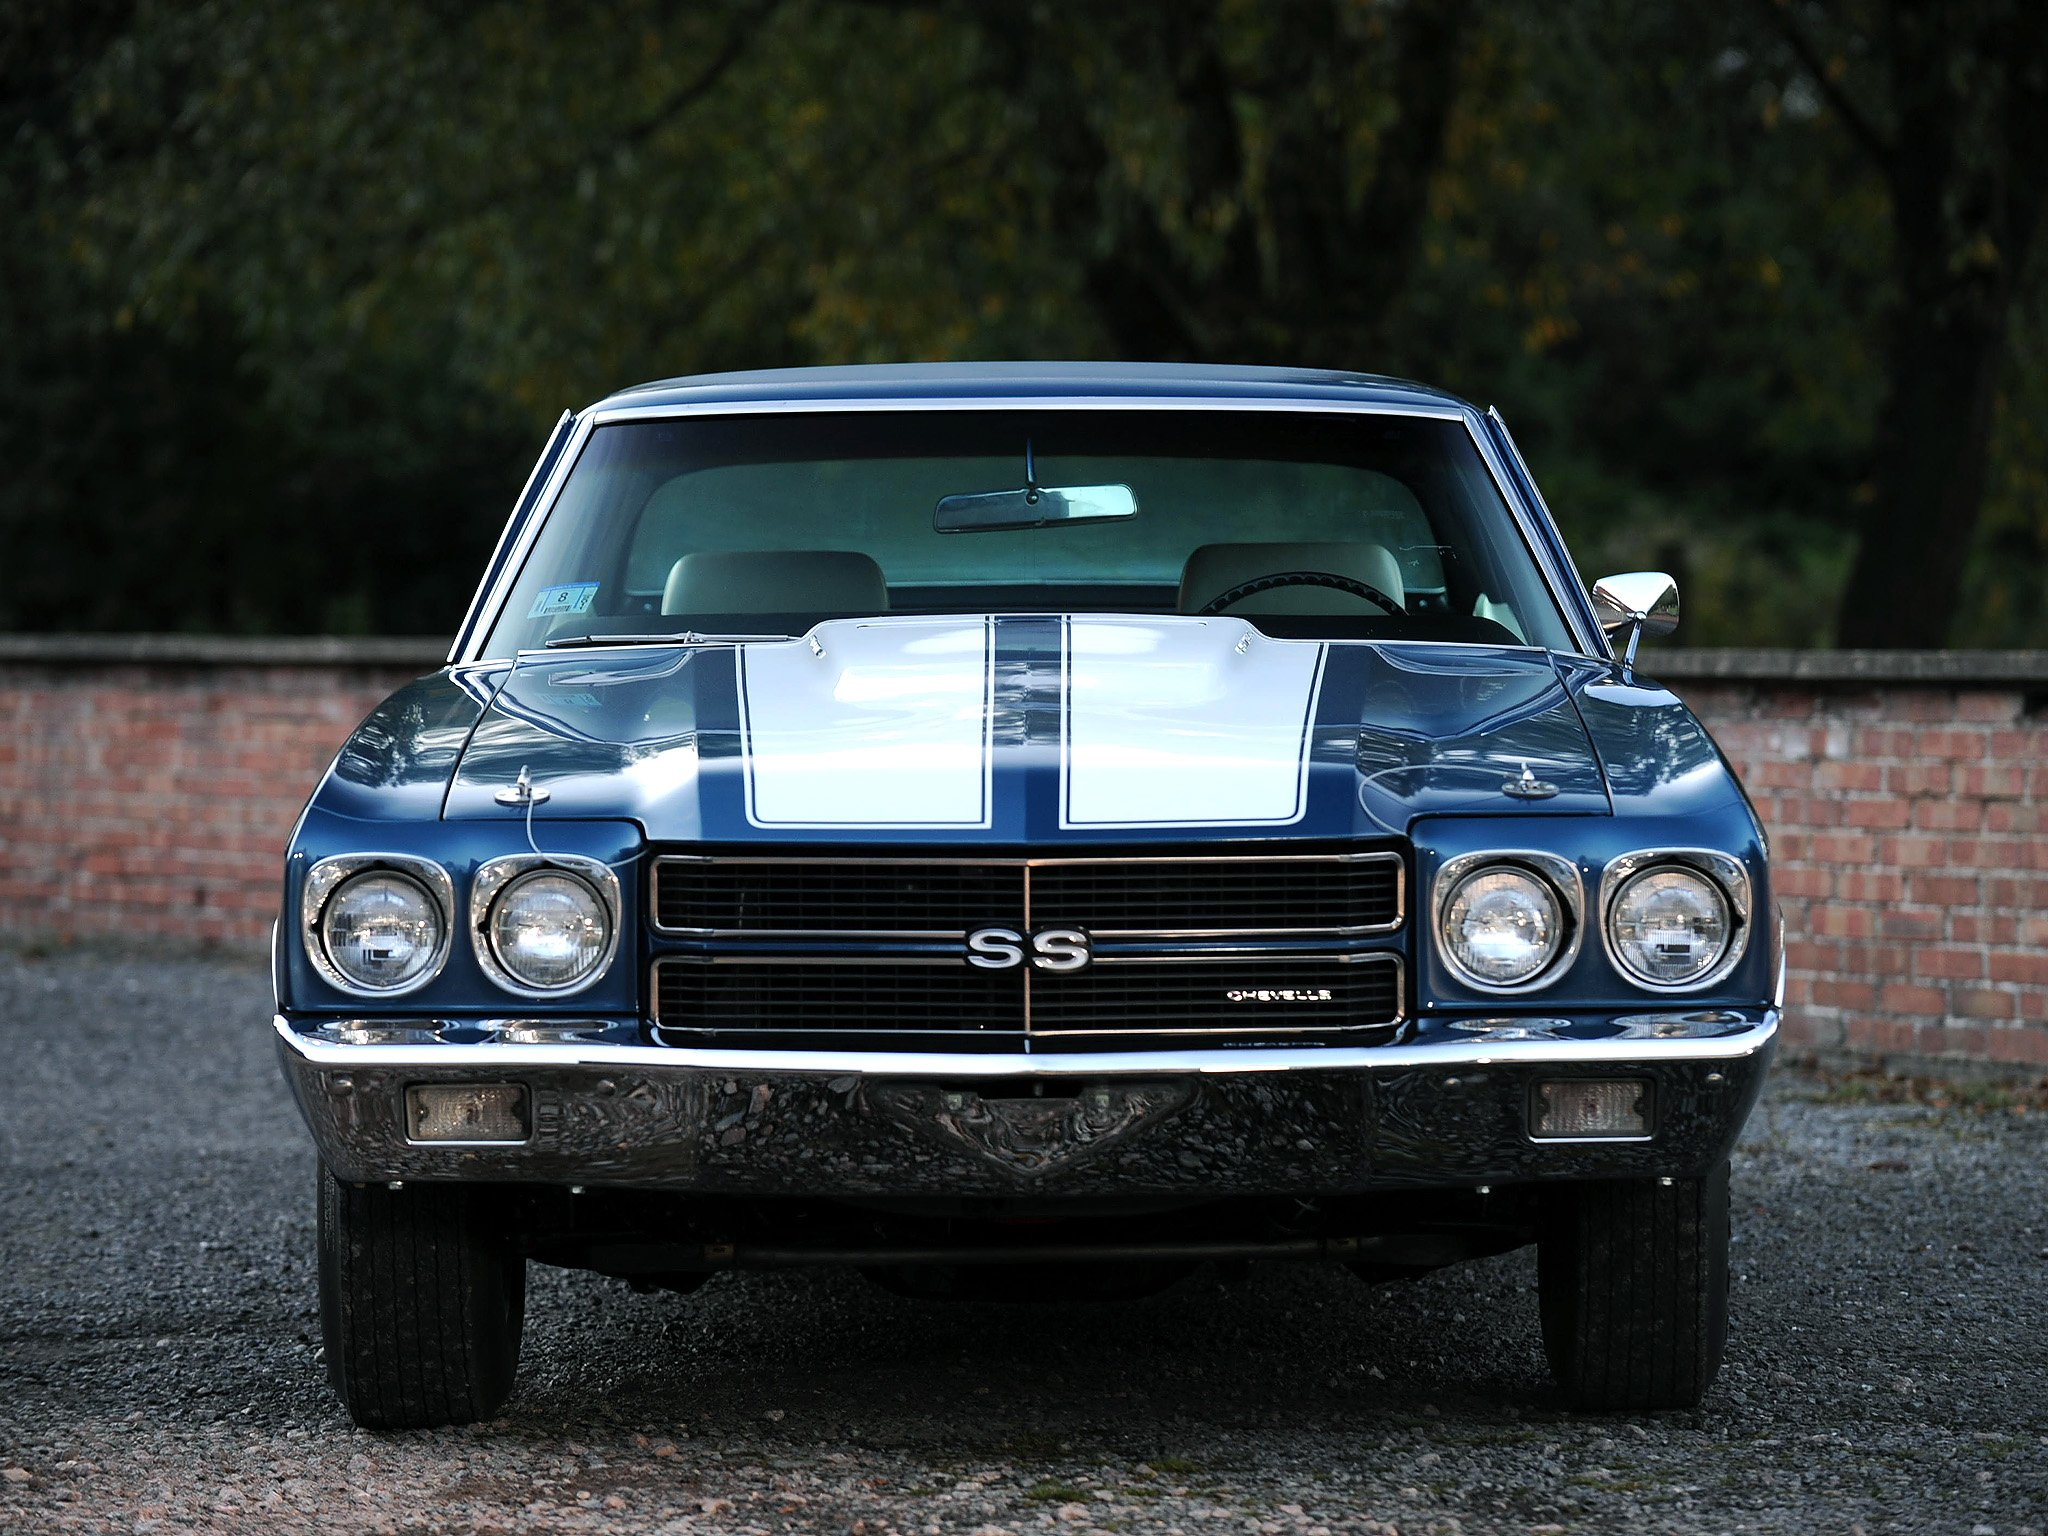 Chevelle Ss Wallpaper 1970 Chevrolet Chevelle S S 396 Hardtop Coupe Muscle Classic